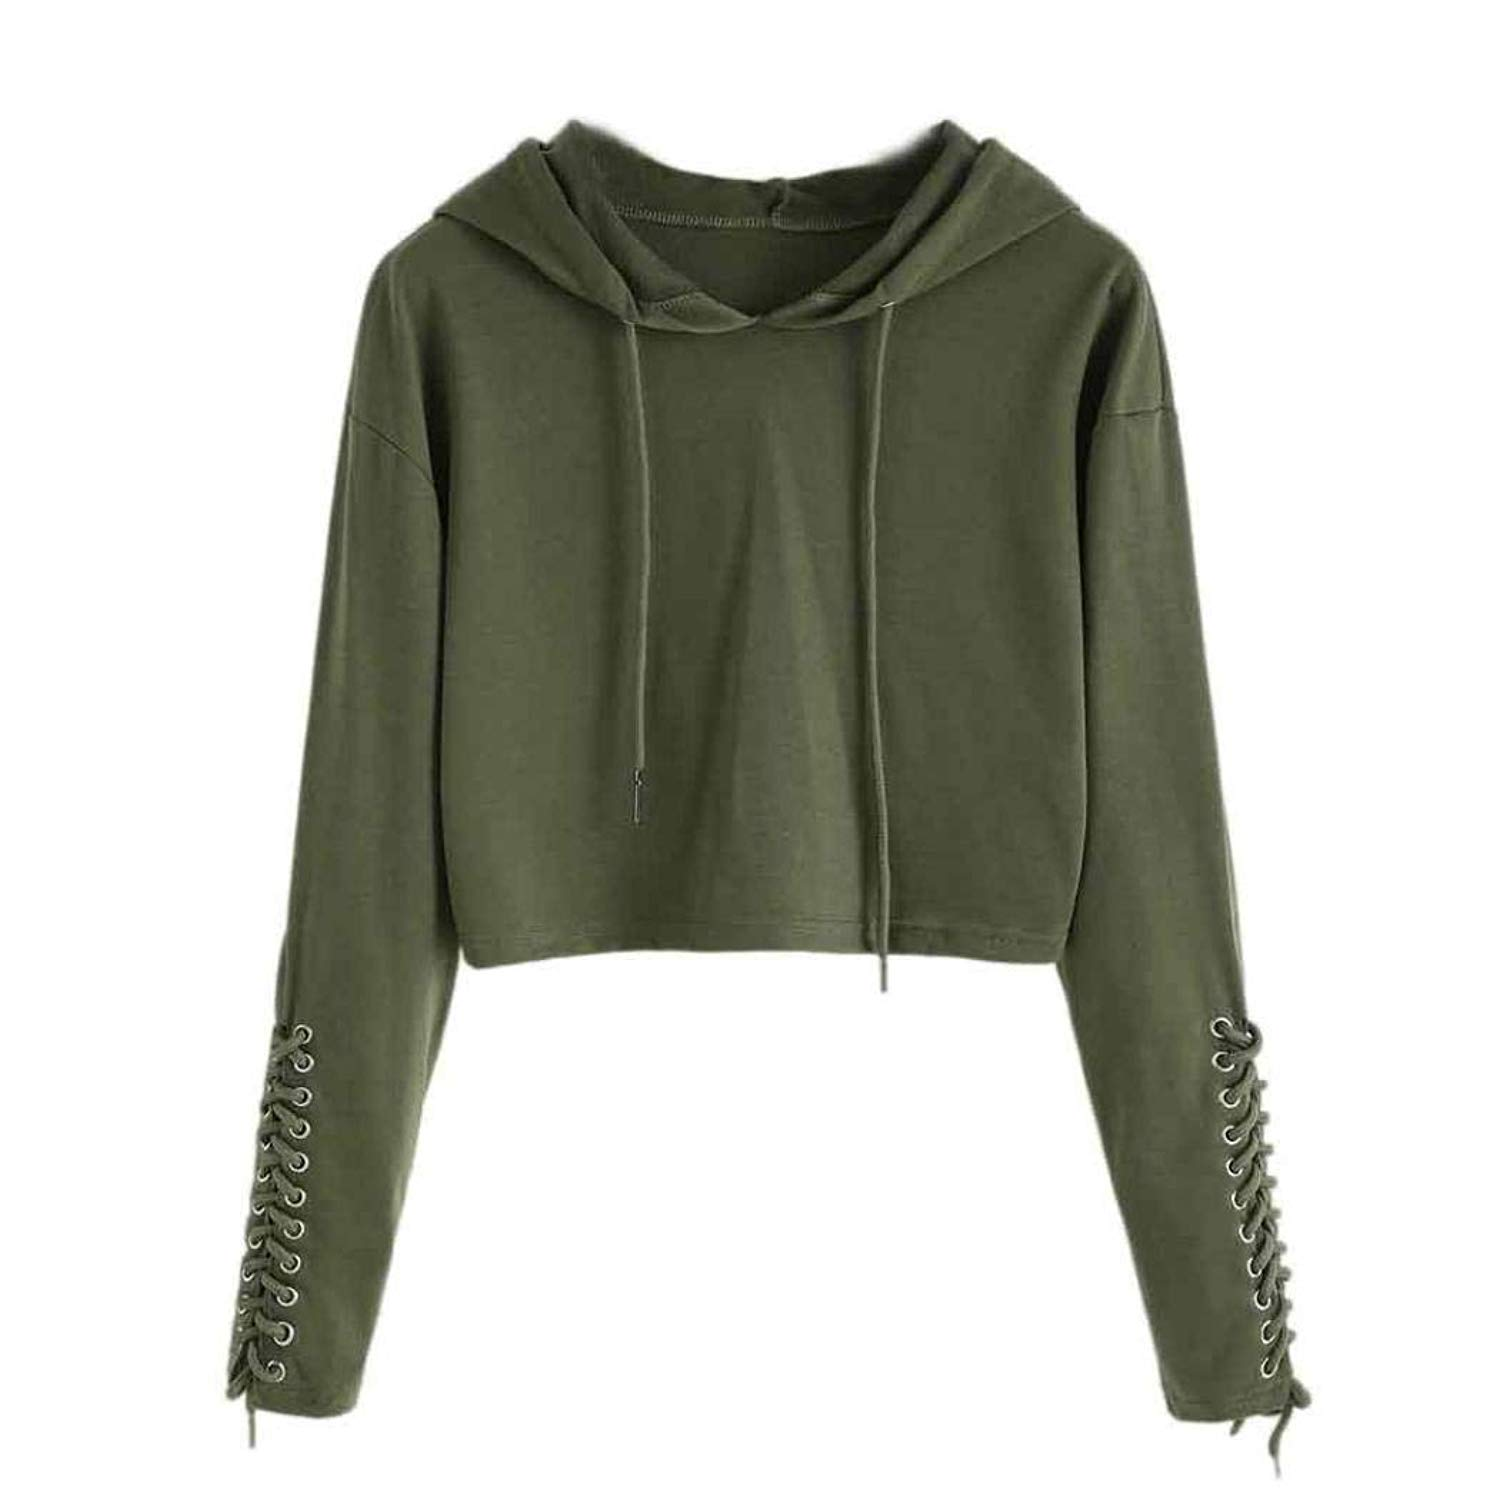 Women Hoodie,Ladies Fashion Solid Lace up Long Sleeve Sweatshirt Sports Crop Top Pullover